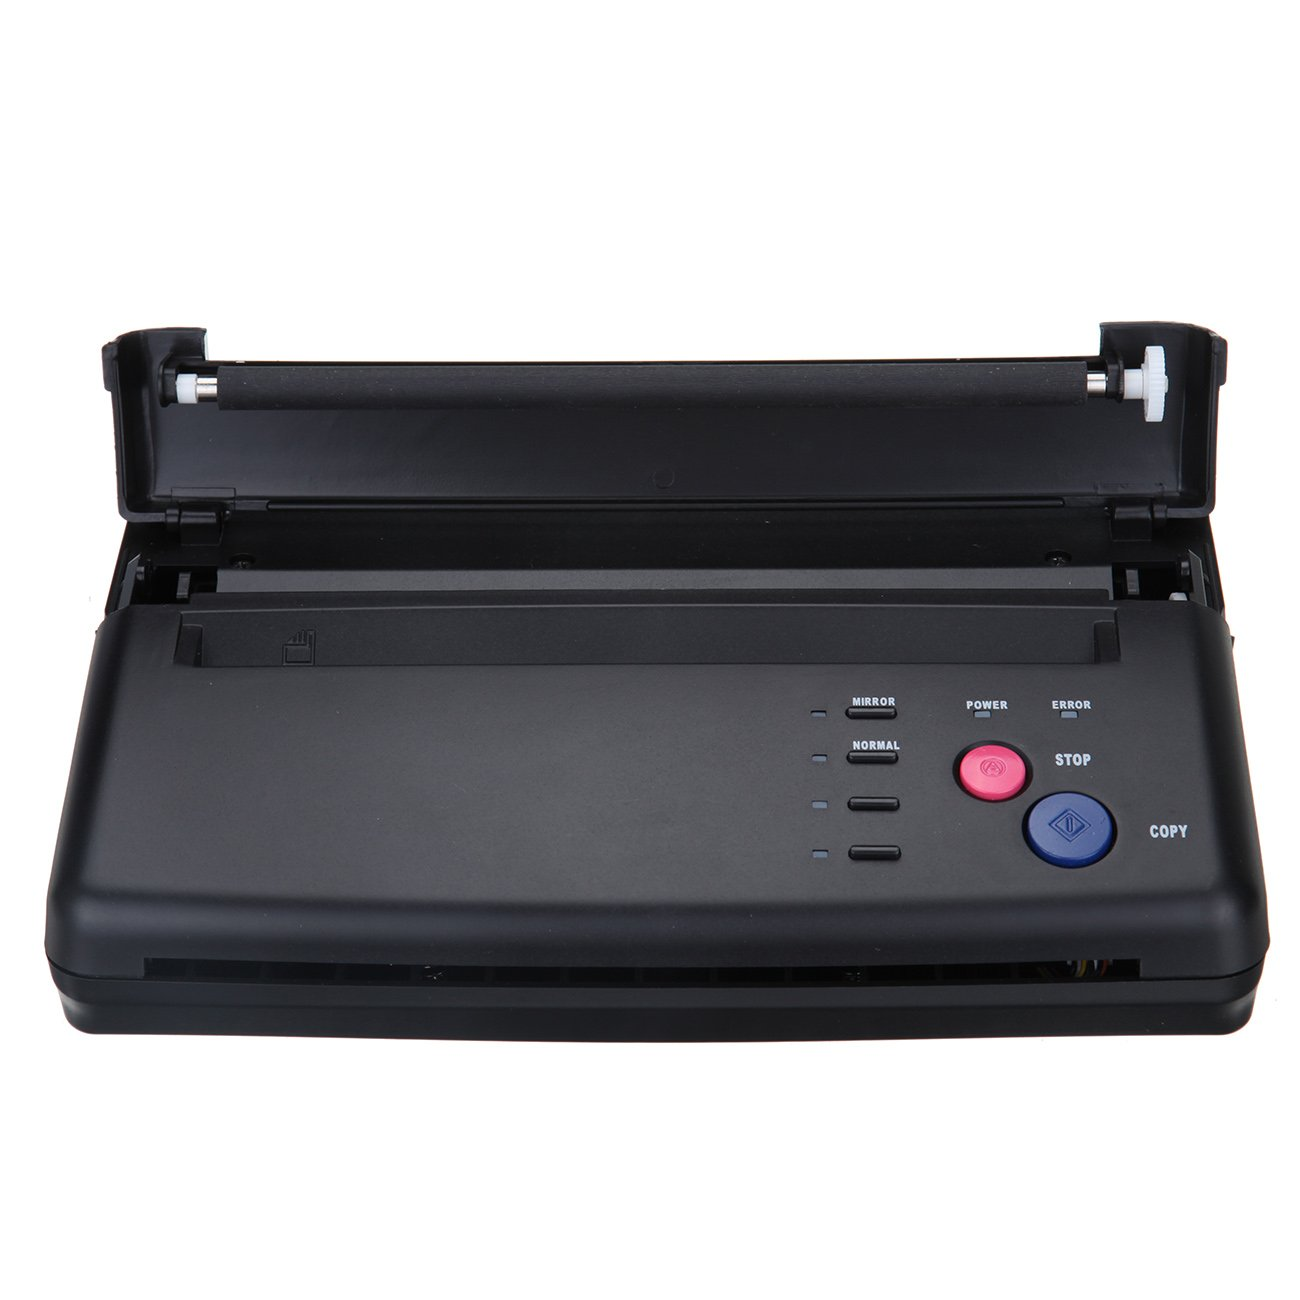 Black Tattoo Transfer Stencil Machine Thermal Copier Printer with Bonus Papers by YILONG